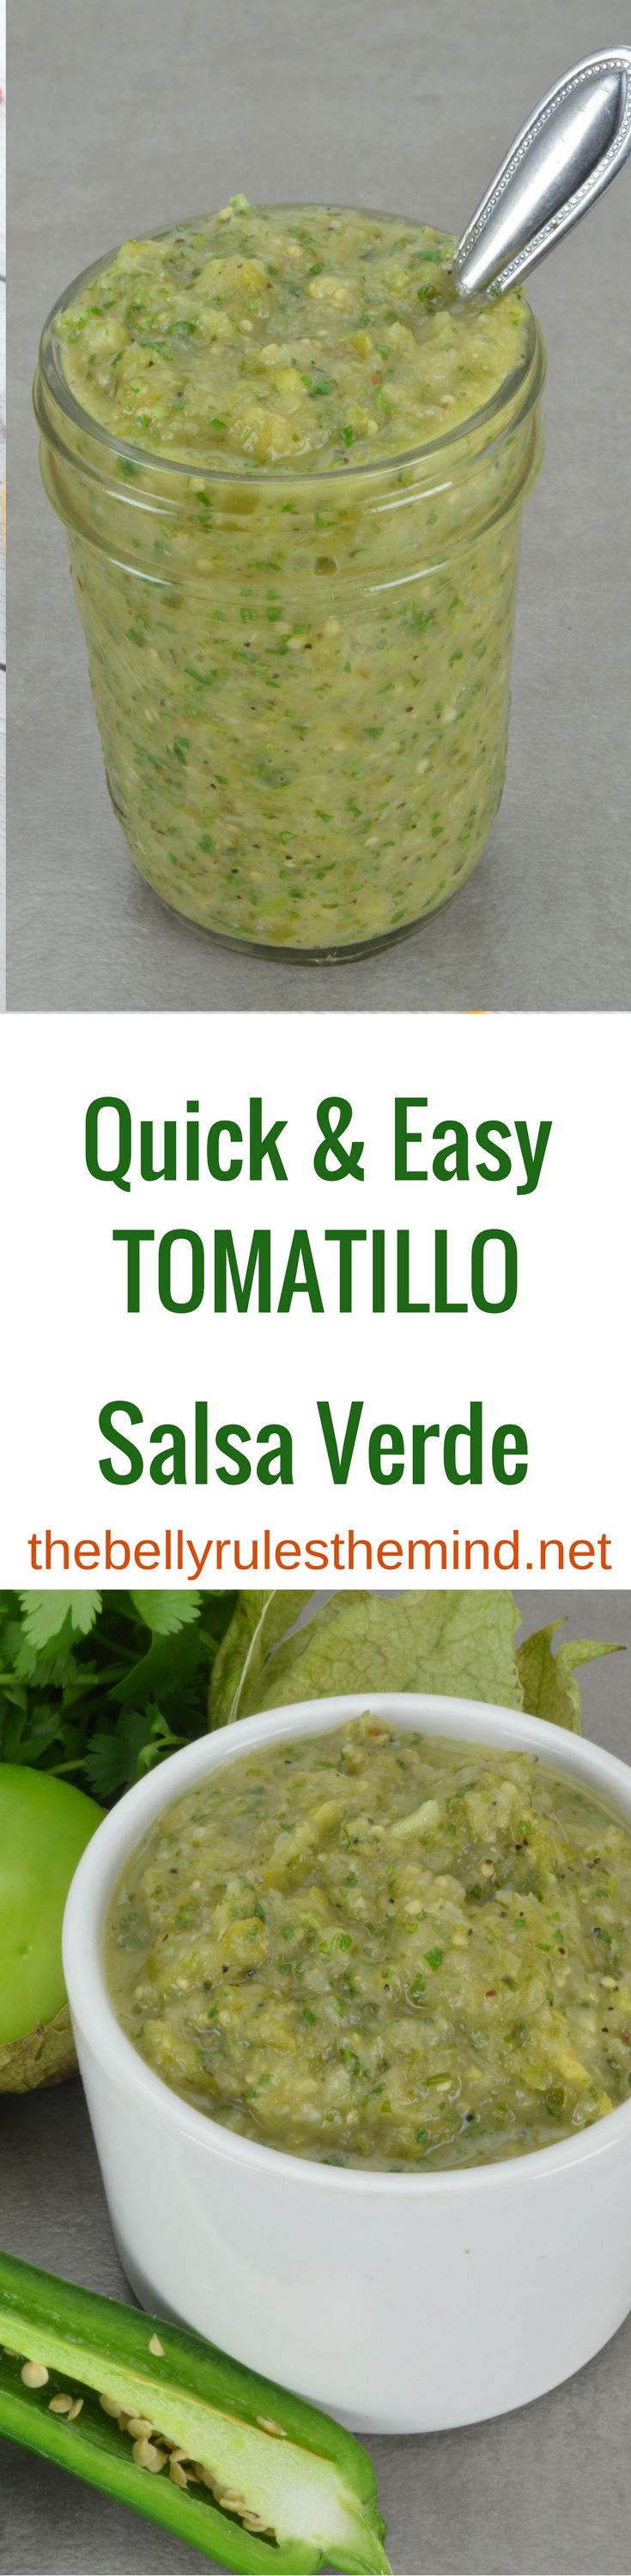 This Tomatillo Salsa Verde is one of my favorite recipes. EVER. It's so easy to make, packs a huge punch of tangy, zesty flavor and is so versatile, it can be used in countless dishes and recipes. It's also gluten free, vegetarian, dairy free and vegan!http://thebellyrulesthemind.net/2017/04/tomatillo-salsa-verde/